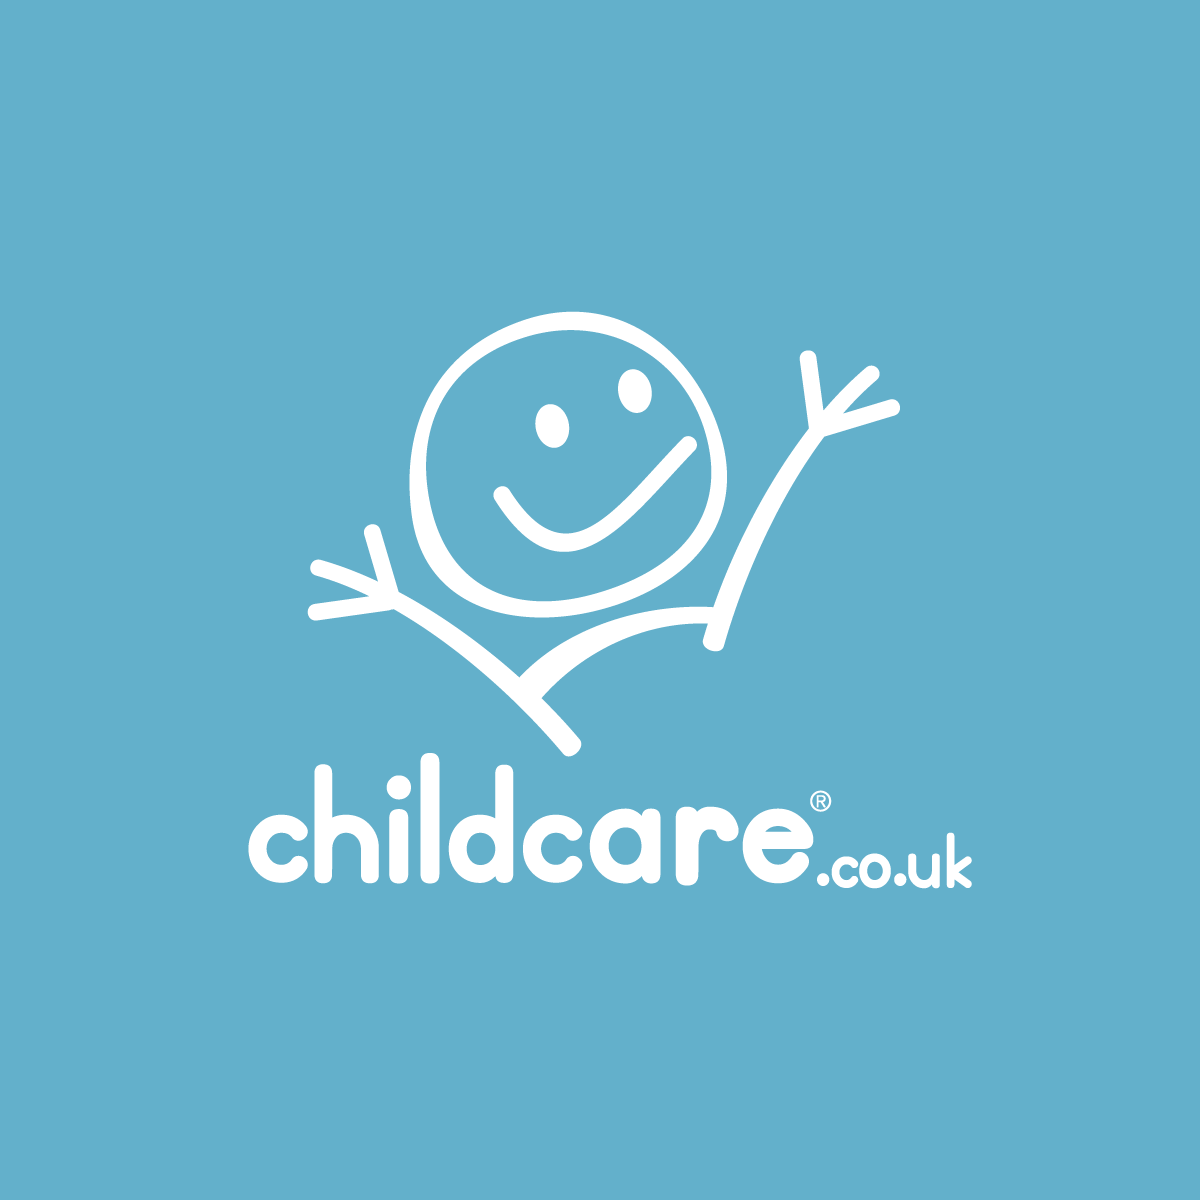 Brand design for Childcare.co.uk